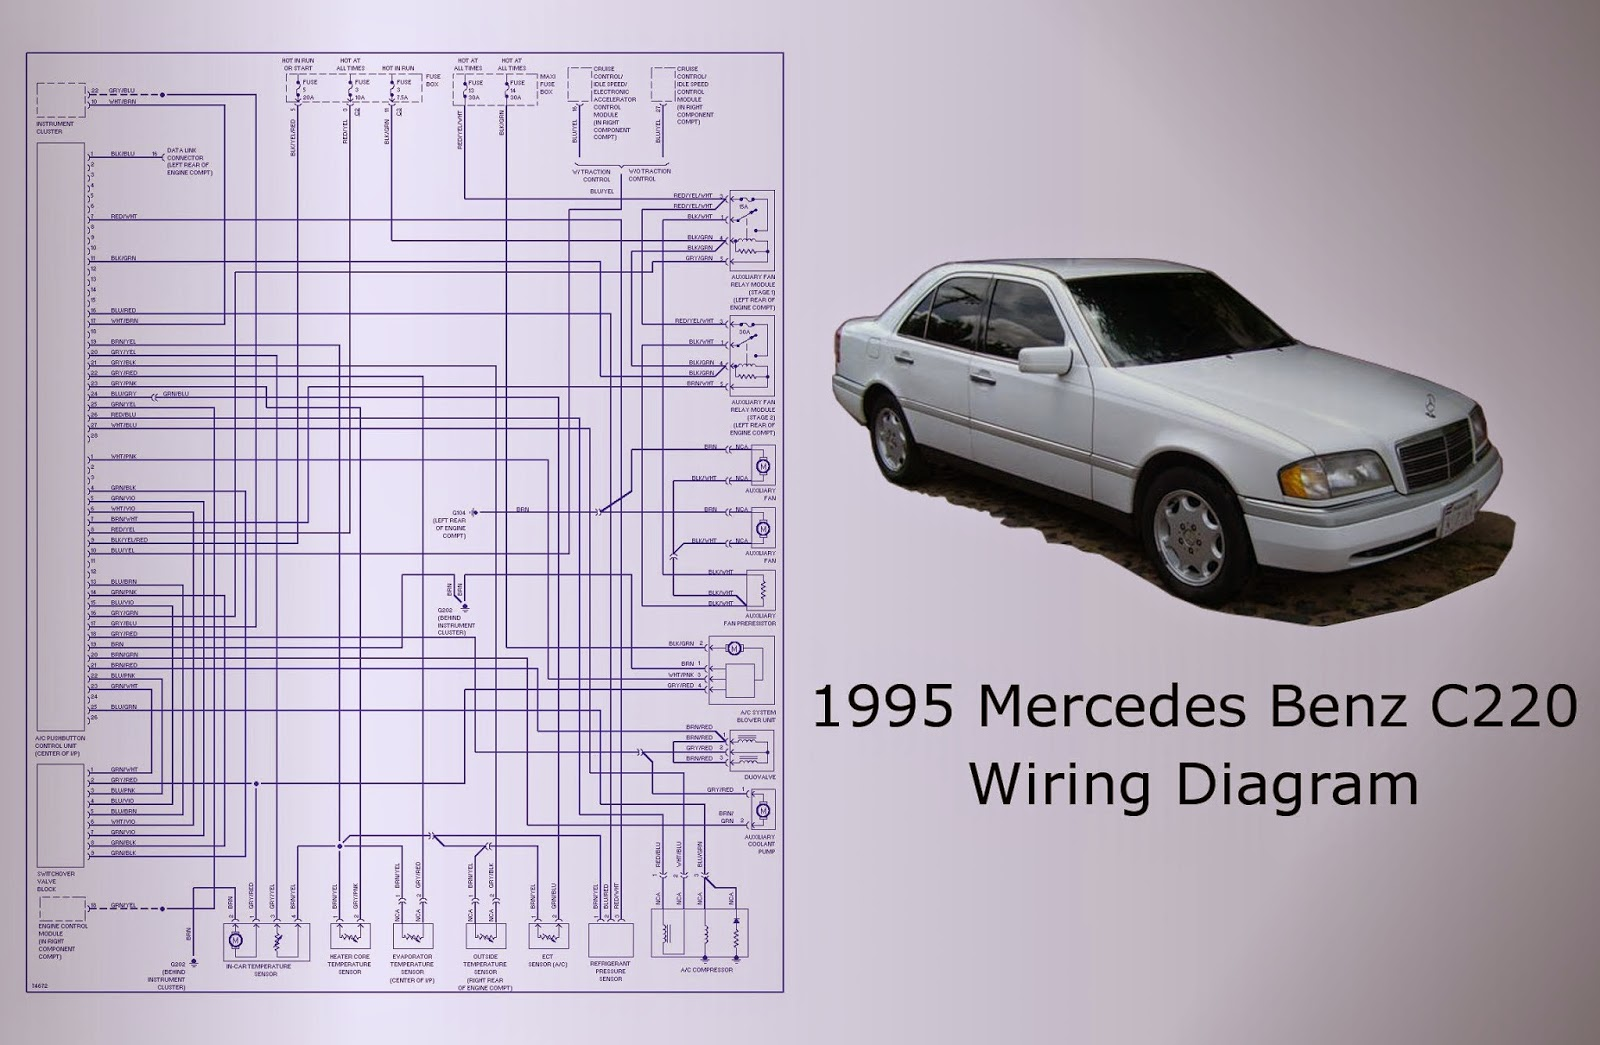 1995 mercedes benz c220 wiring diagram auto wiring diagrams. Black Bedroom Furniture Sets. Home Design Ideas